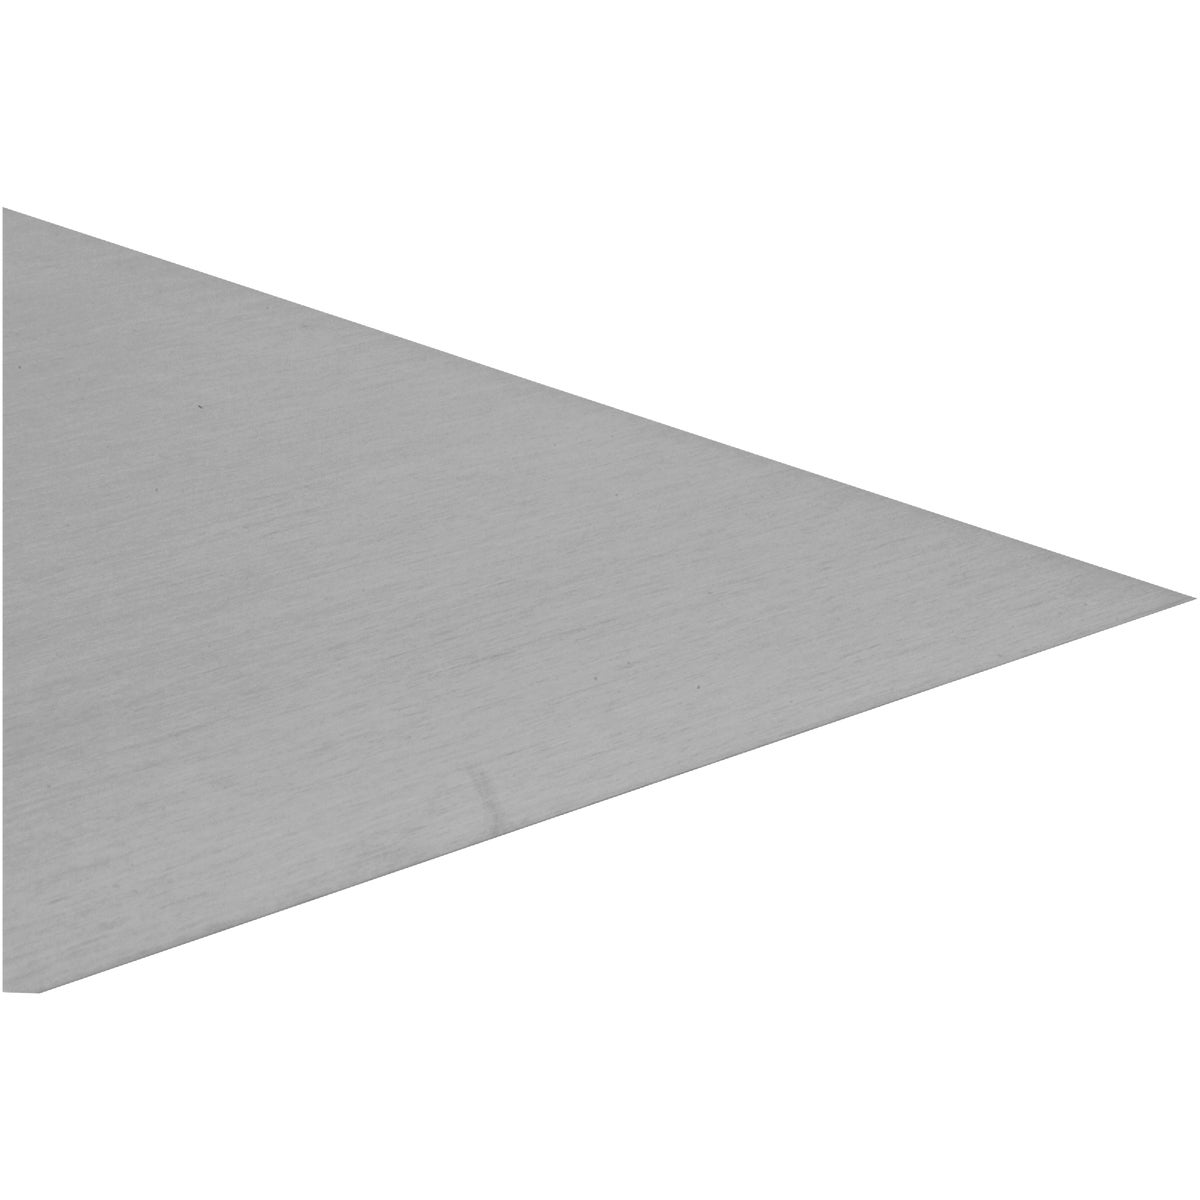 24X36 MILL PLAIN SHEET - N247700 by National Mfg Co